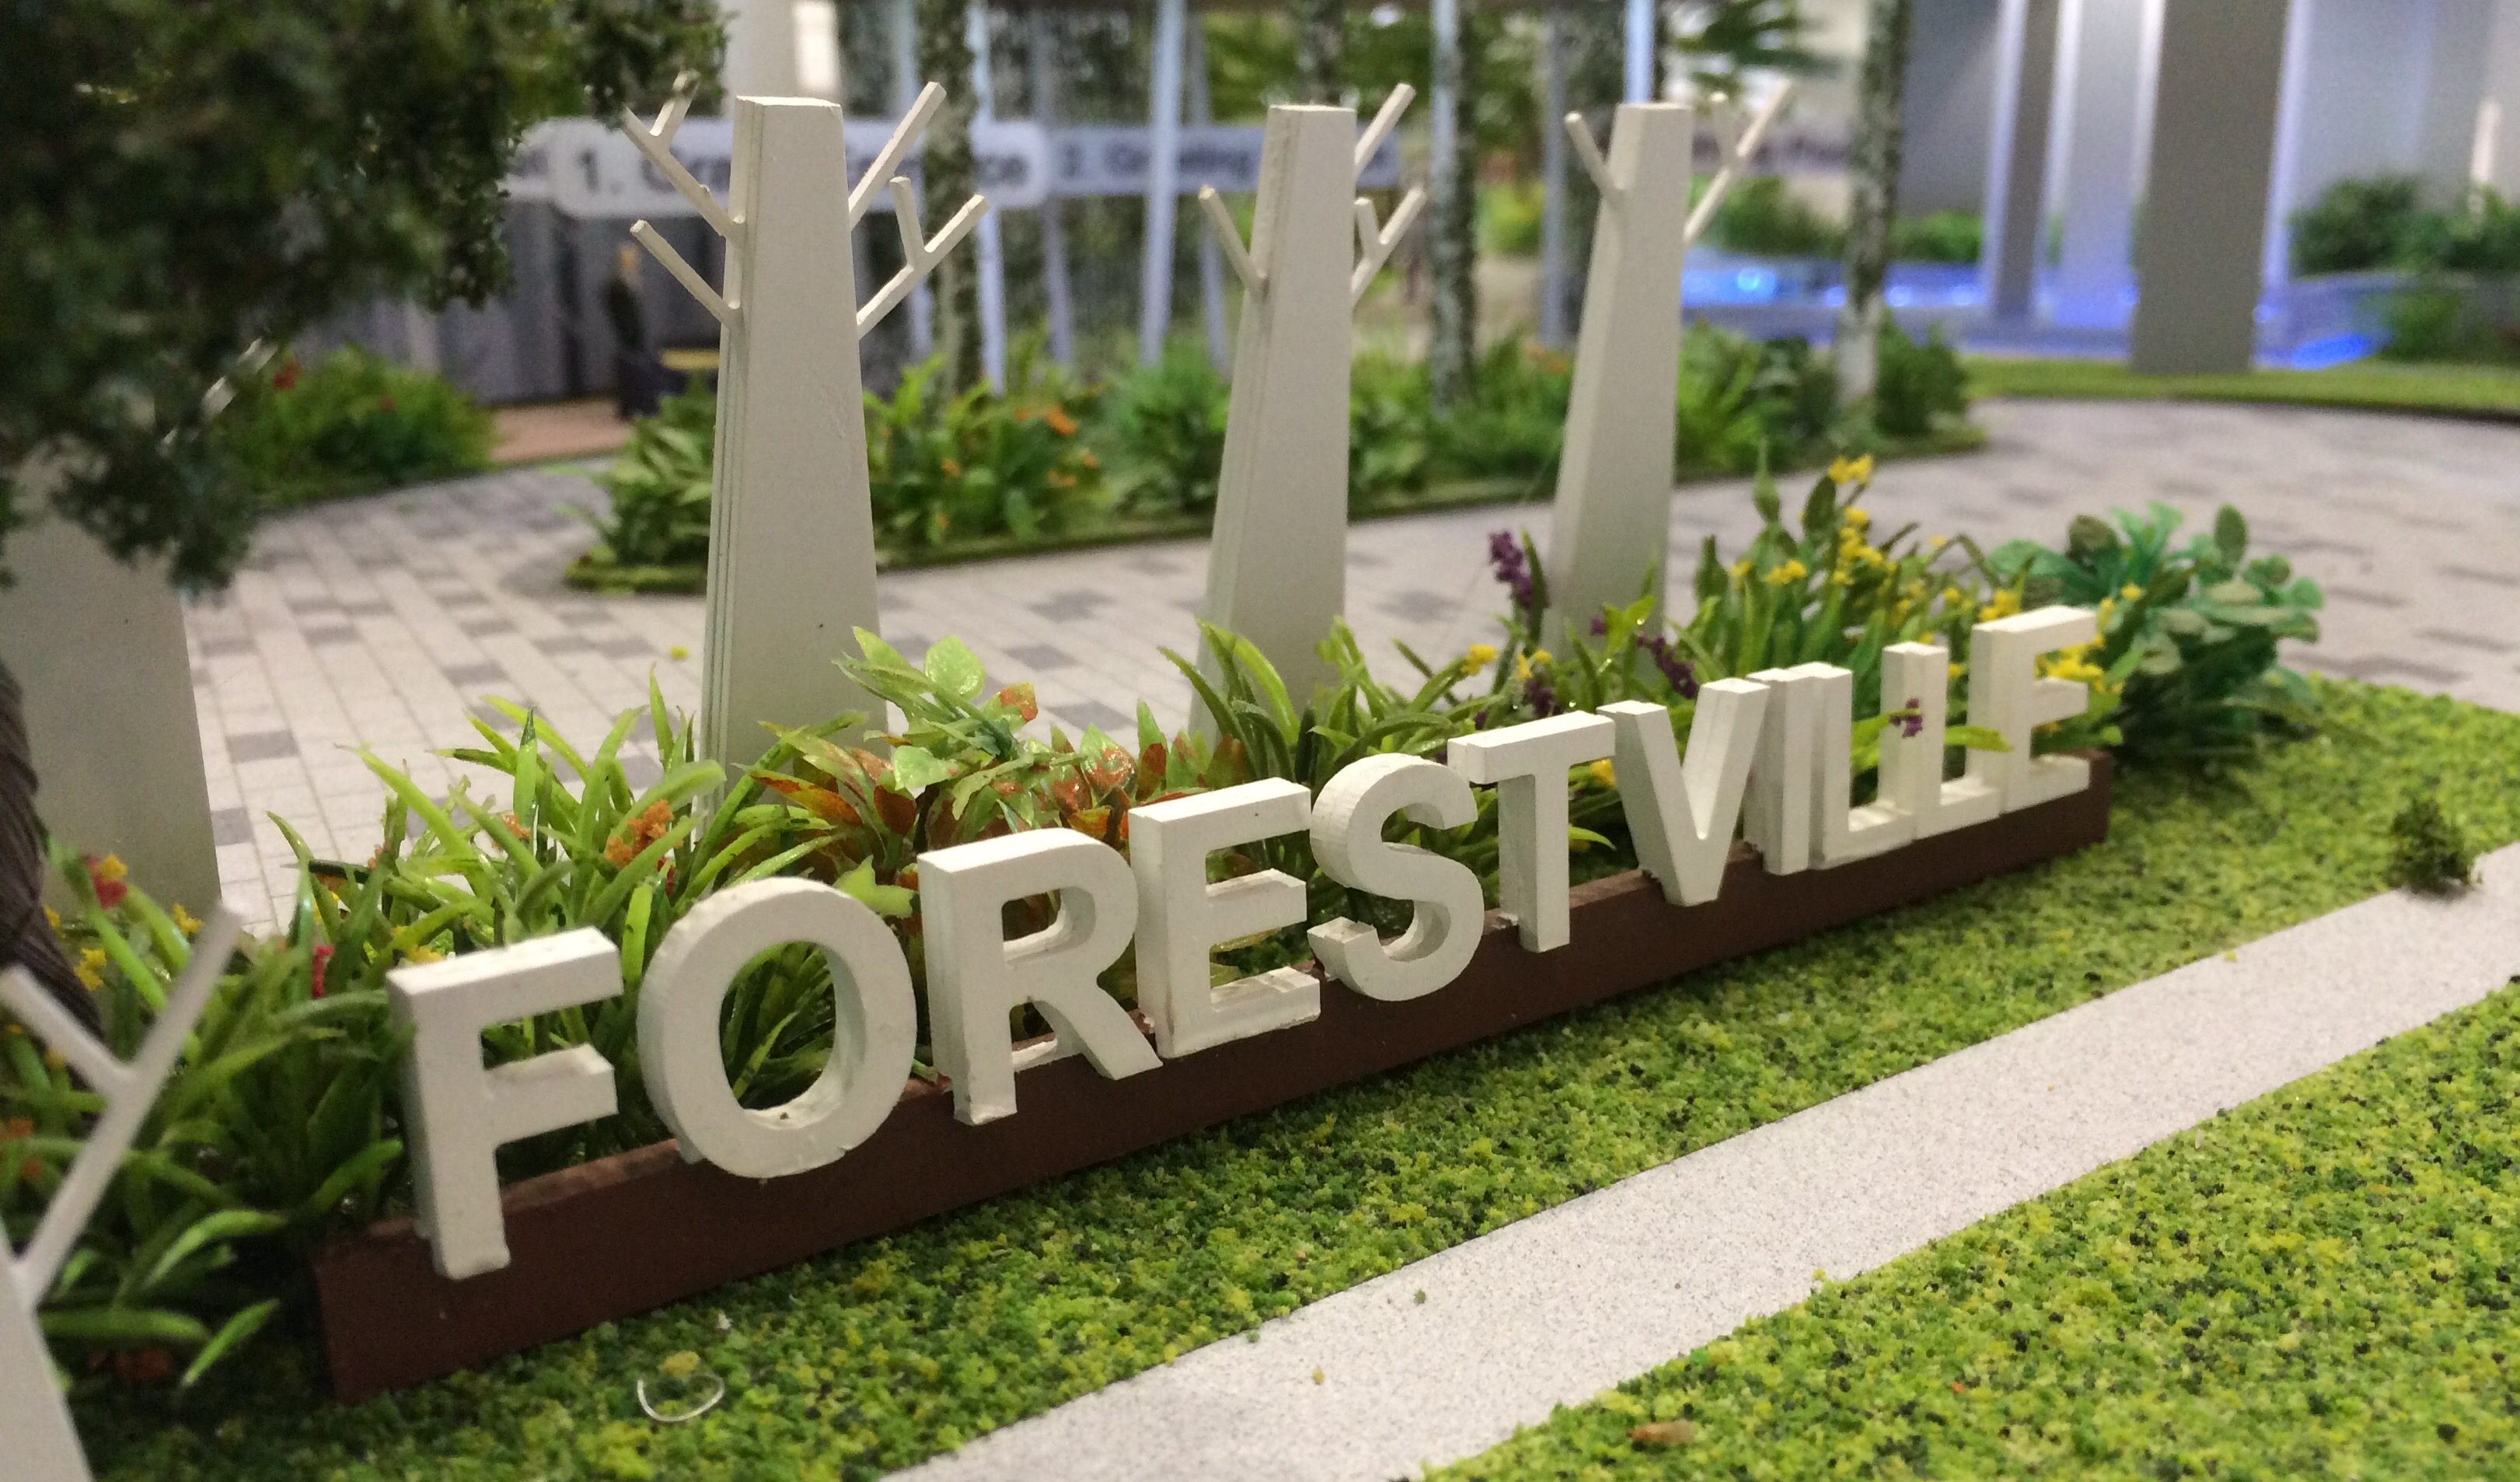 new ec in woodlands near MRT station; Woodlands EC to T.O.P. in 2016, Forestville EC in Woodlands Drive 16